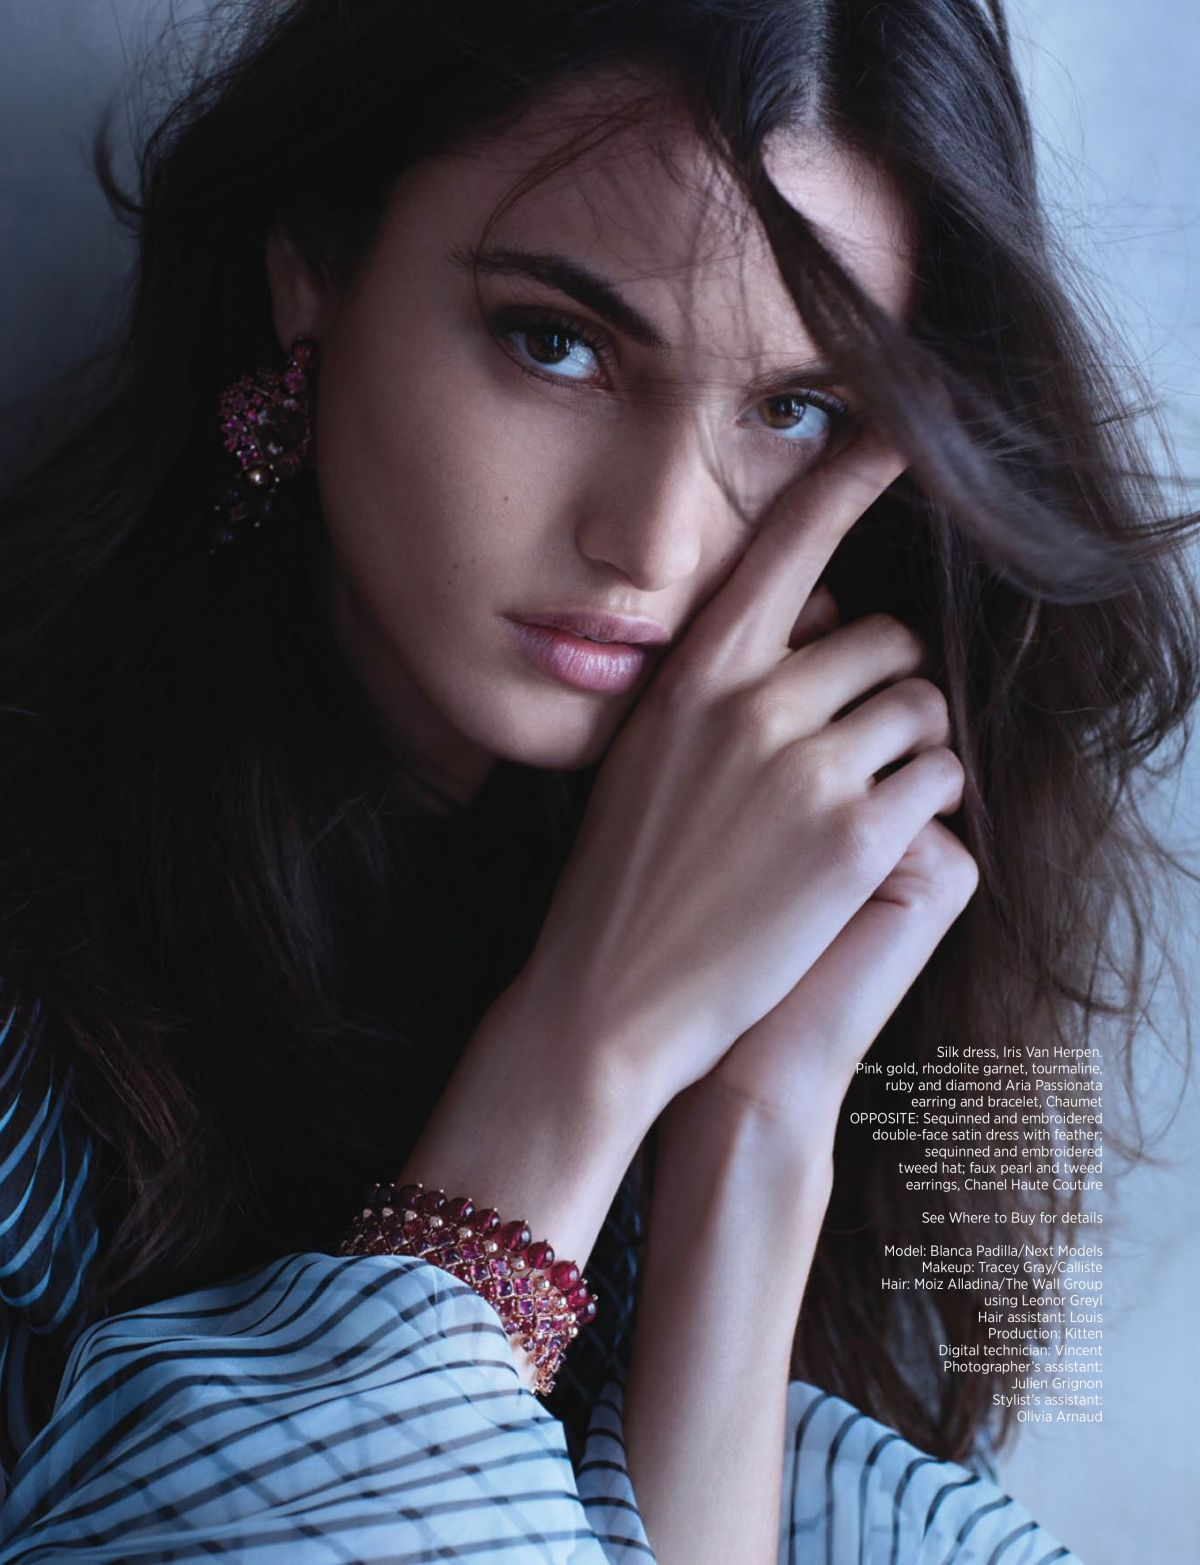 Blanca Padilla in Harper's Bazaar Magazine, Singapore December 2017 Issue